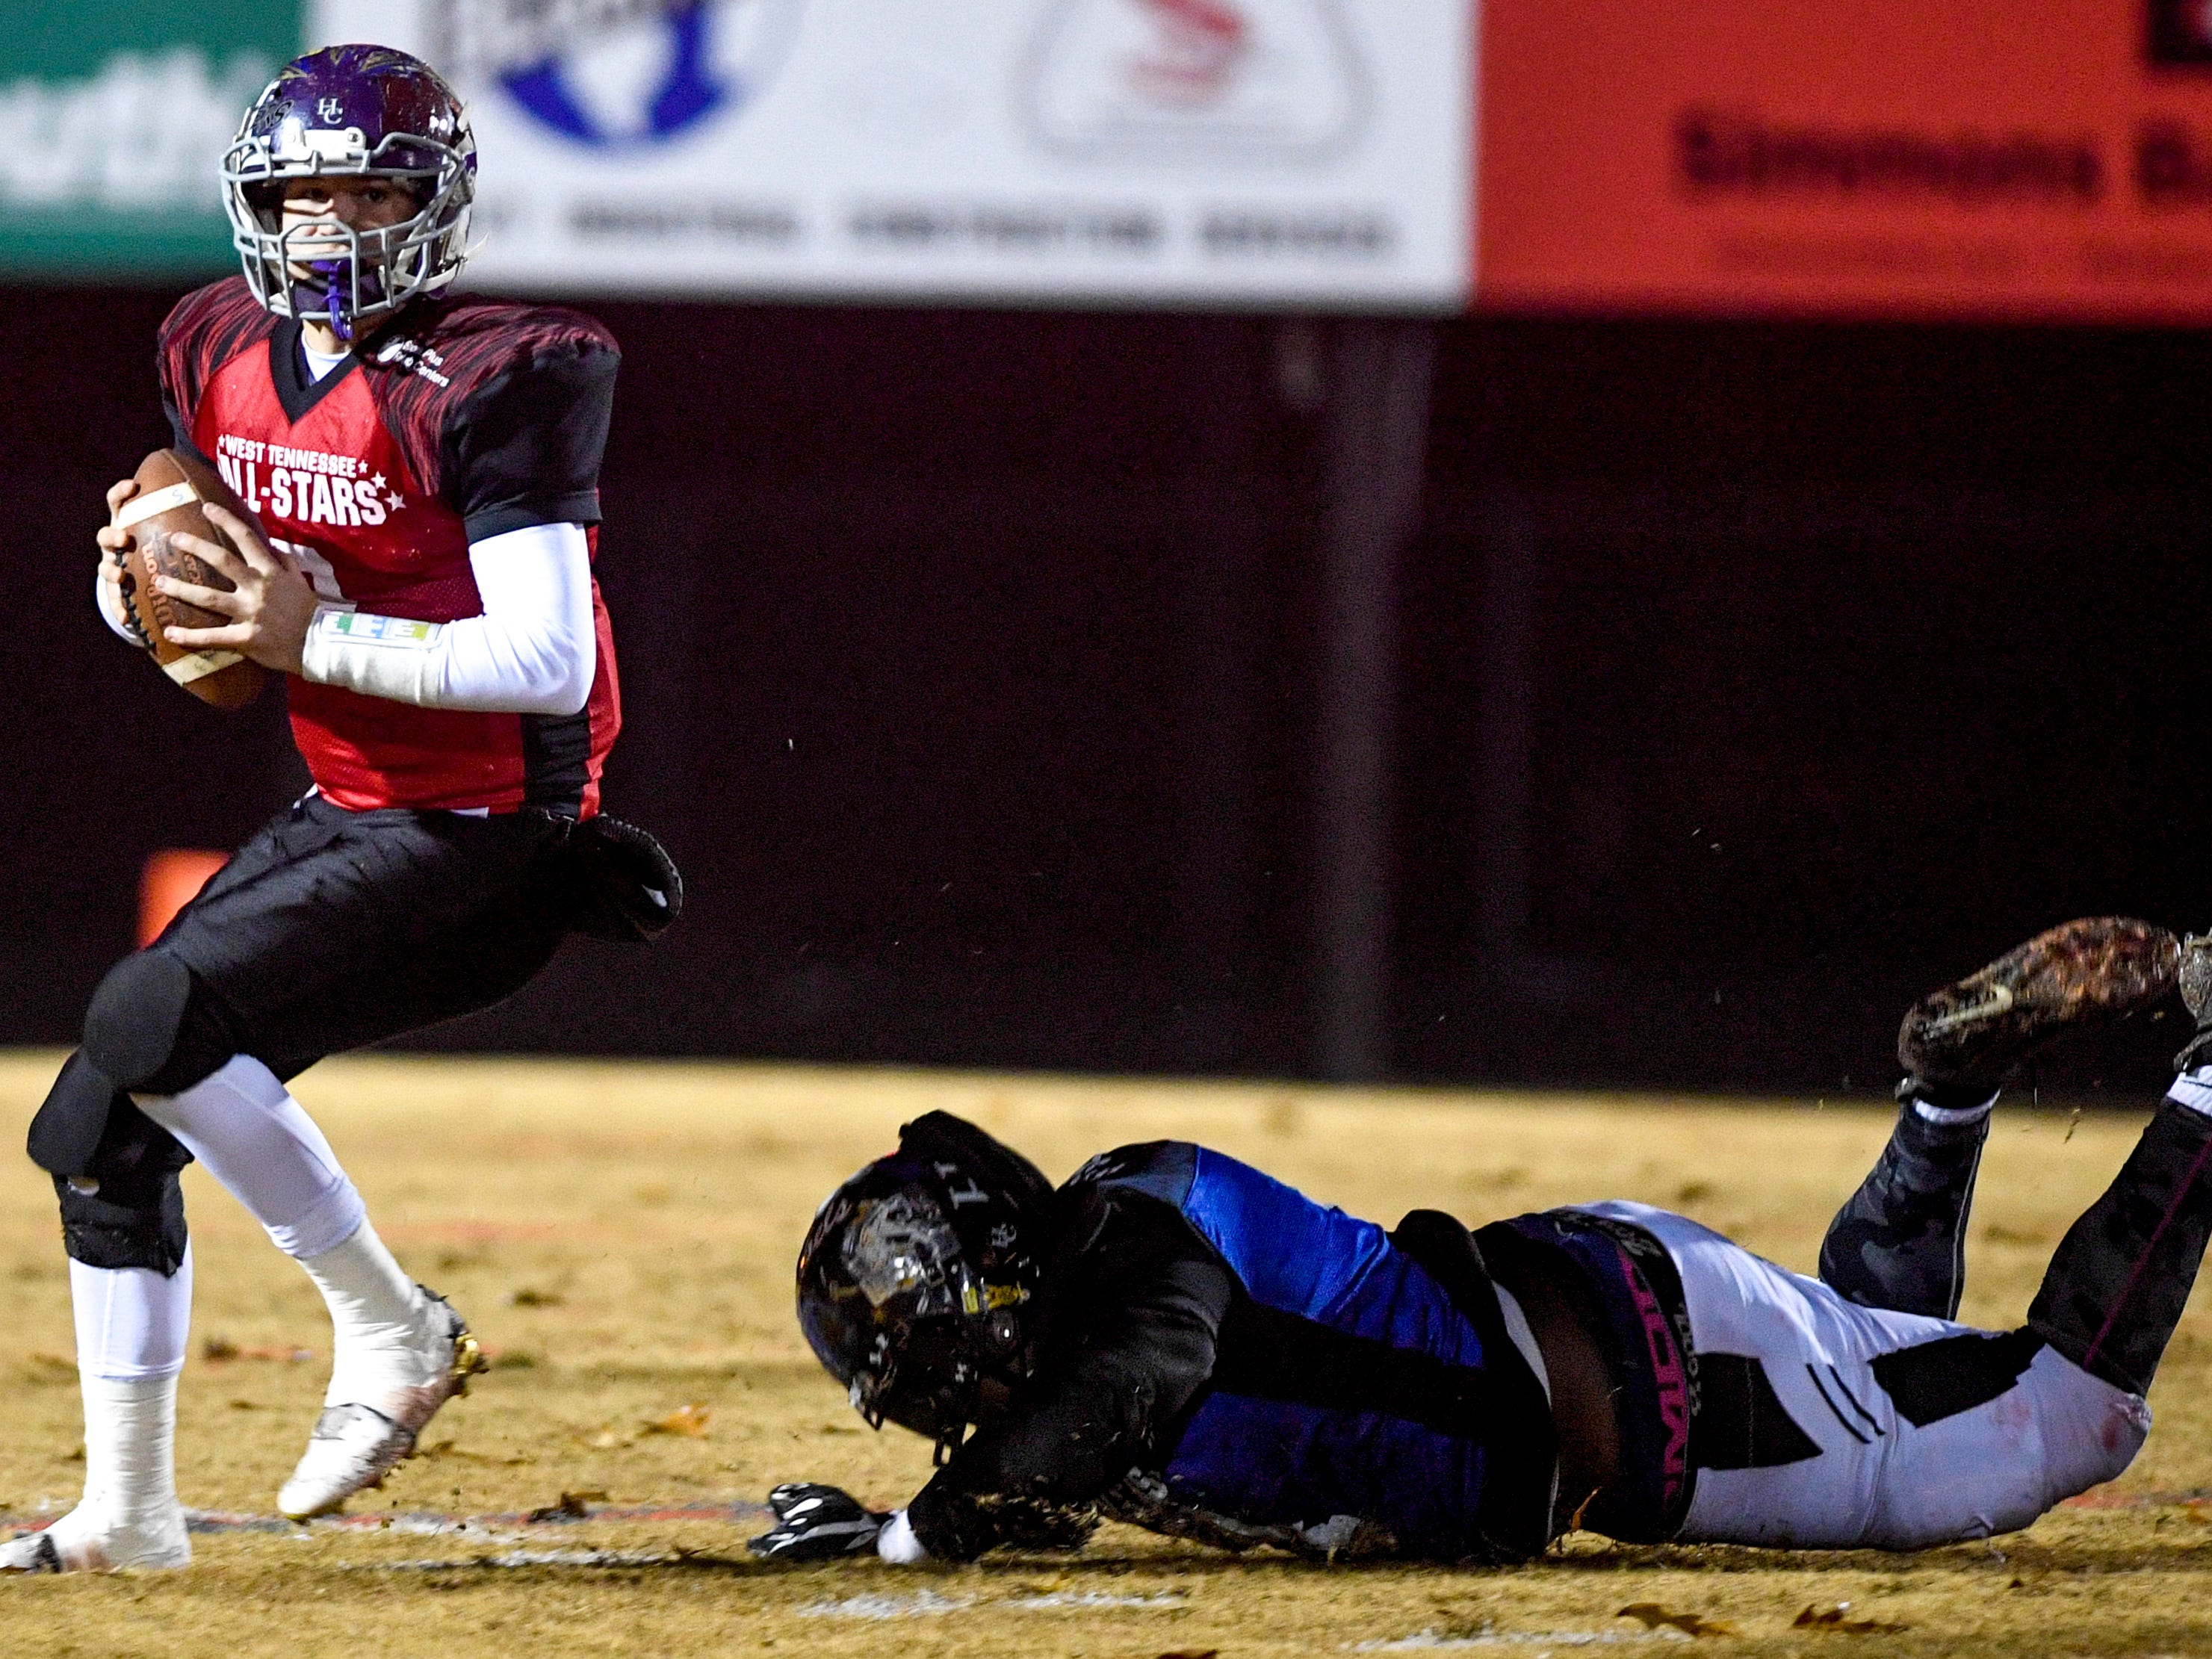 Milan's Taylor Lockhart (9) evades a South player trying to tackle him during the West Tennessee All-Star football game at University School of Jackson in Jackson, Tenn., on Friday, Dec. 7, 2018.